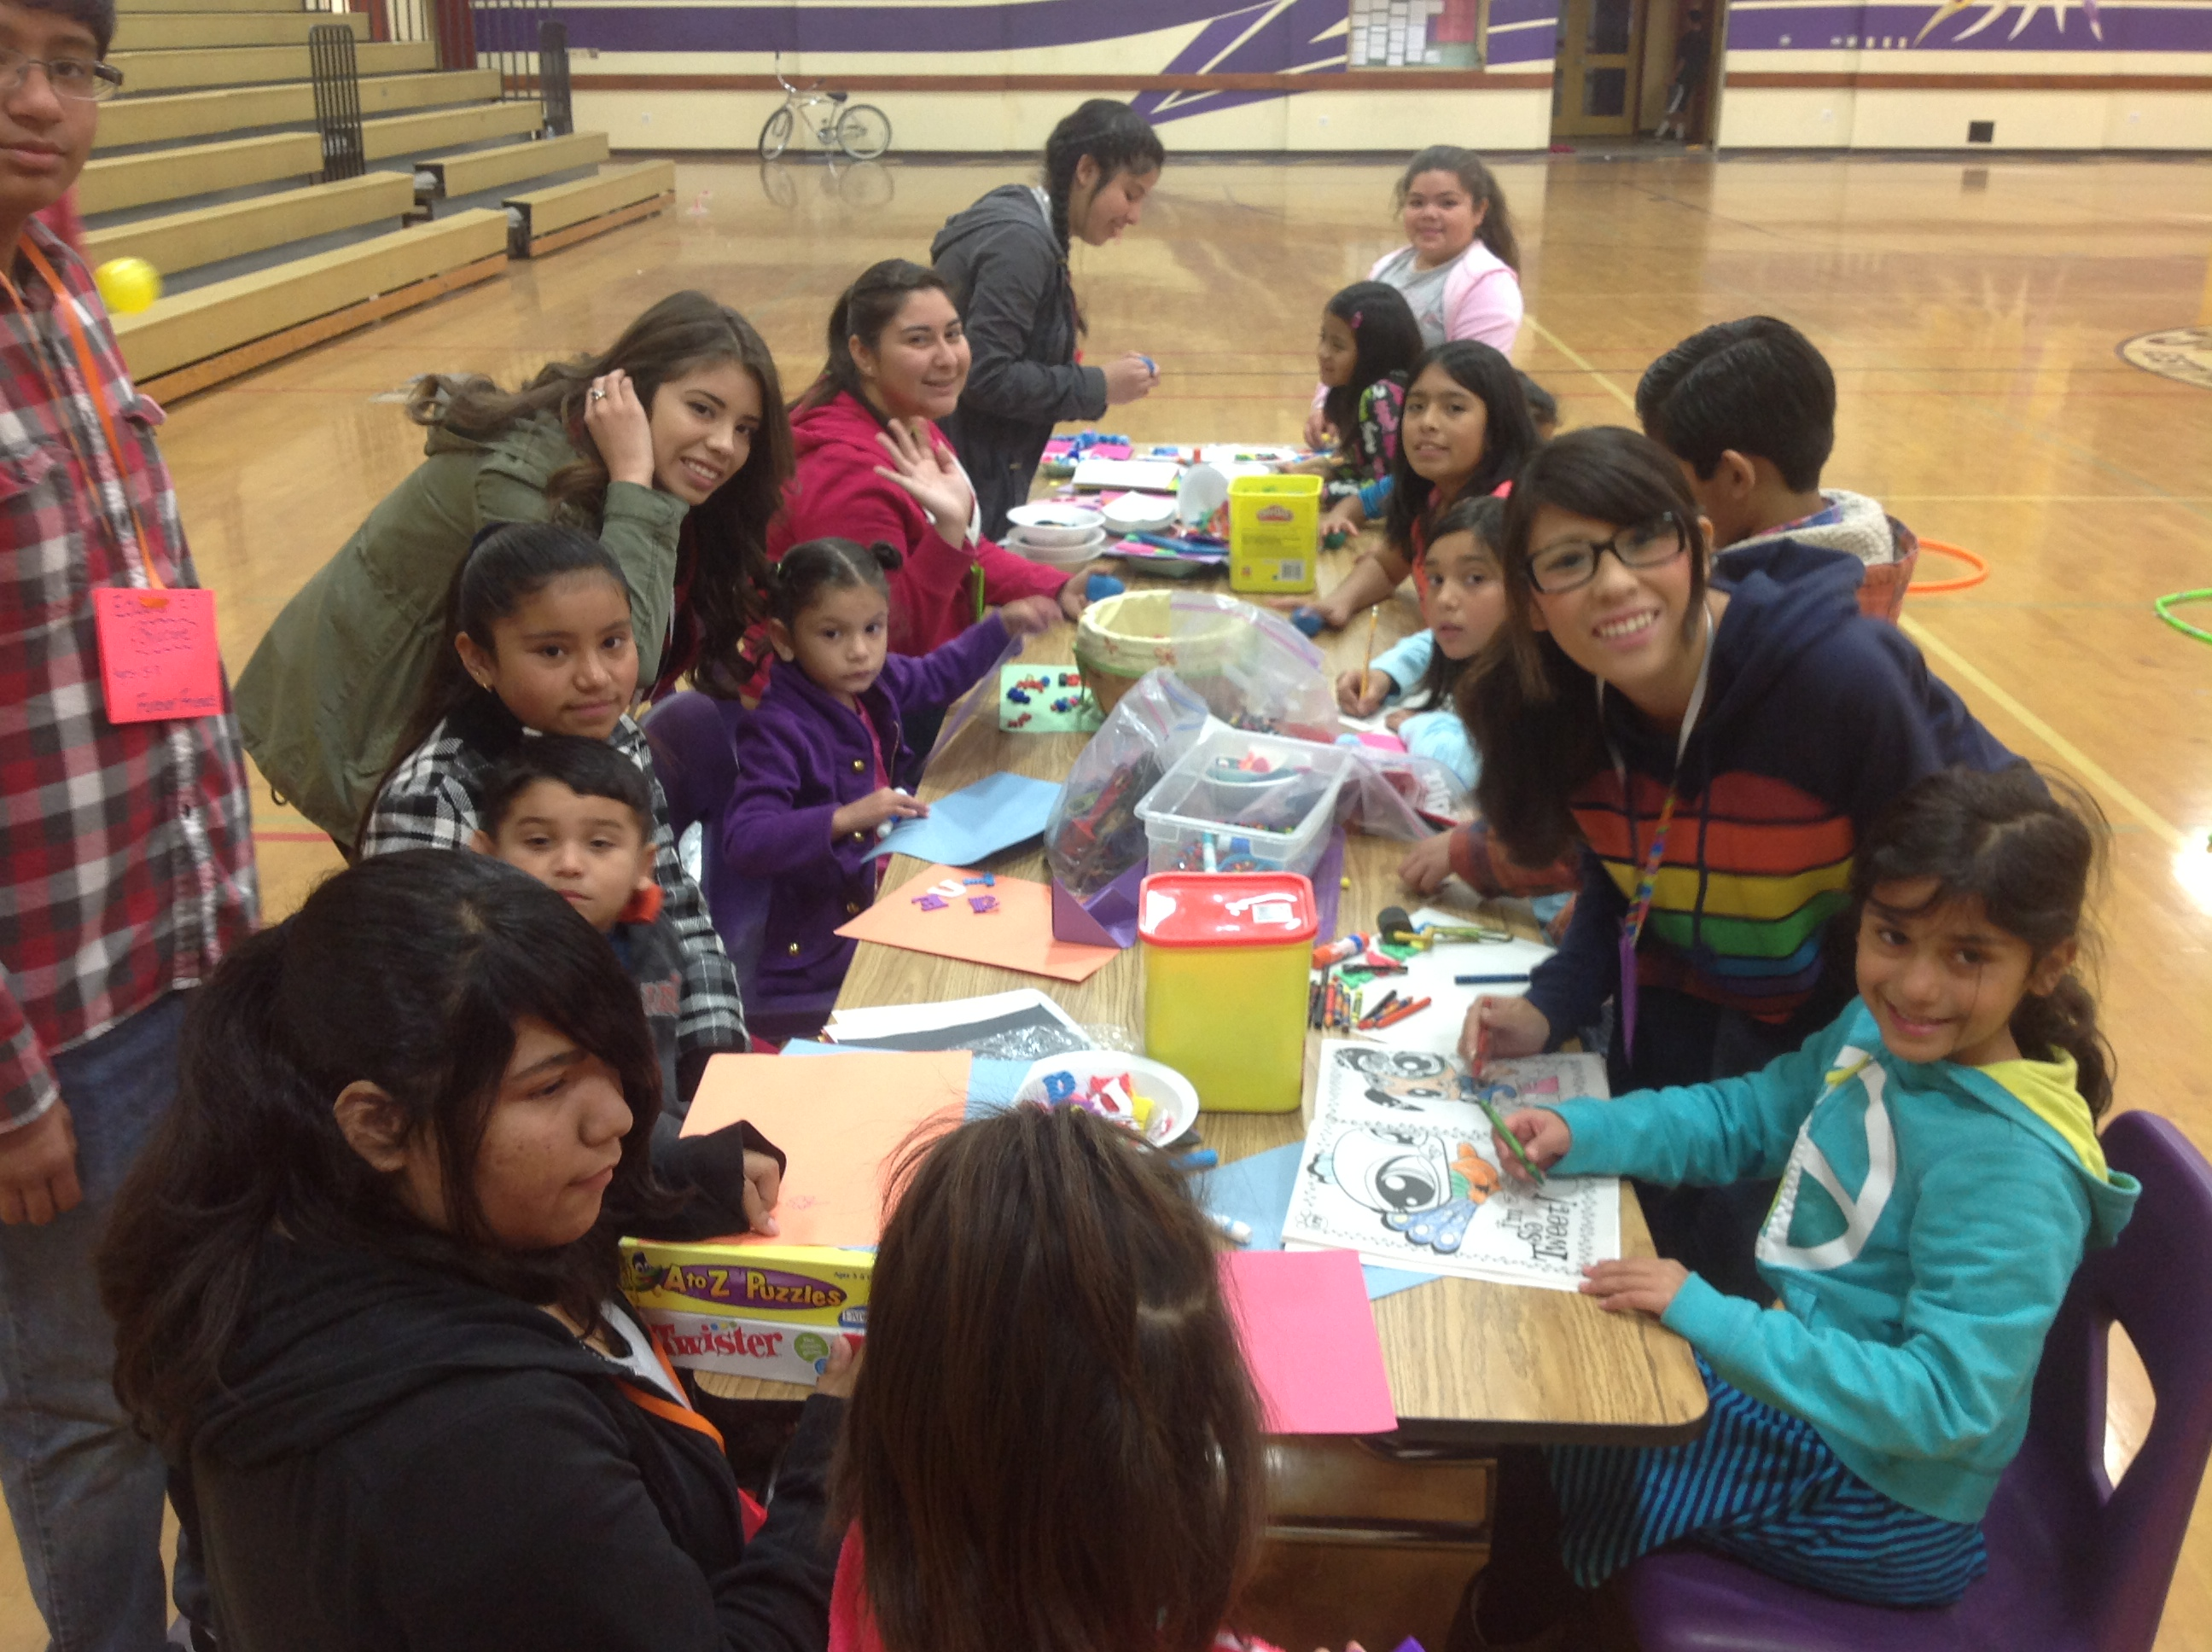 Craft Table with High School mentors and kids